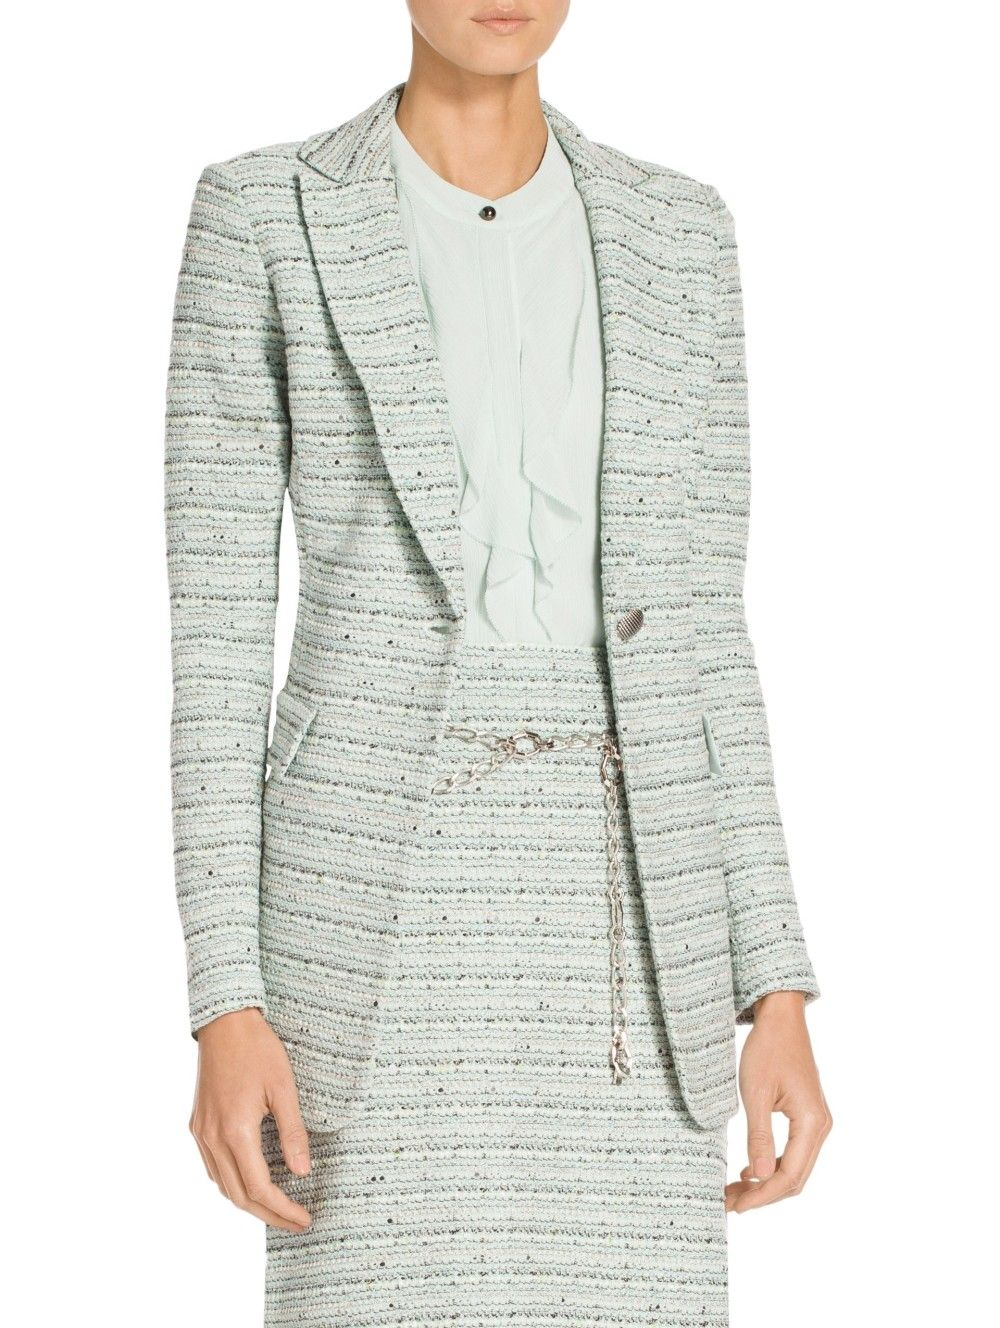 Riana Multi Tweed Jacket | Jackets, Tweed jacket, Tweed